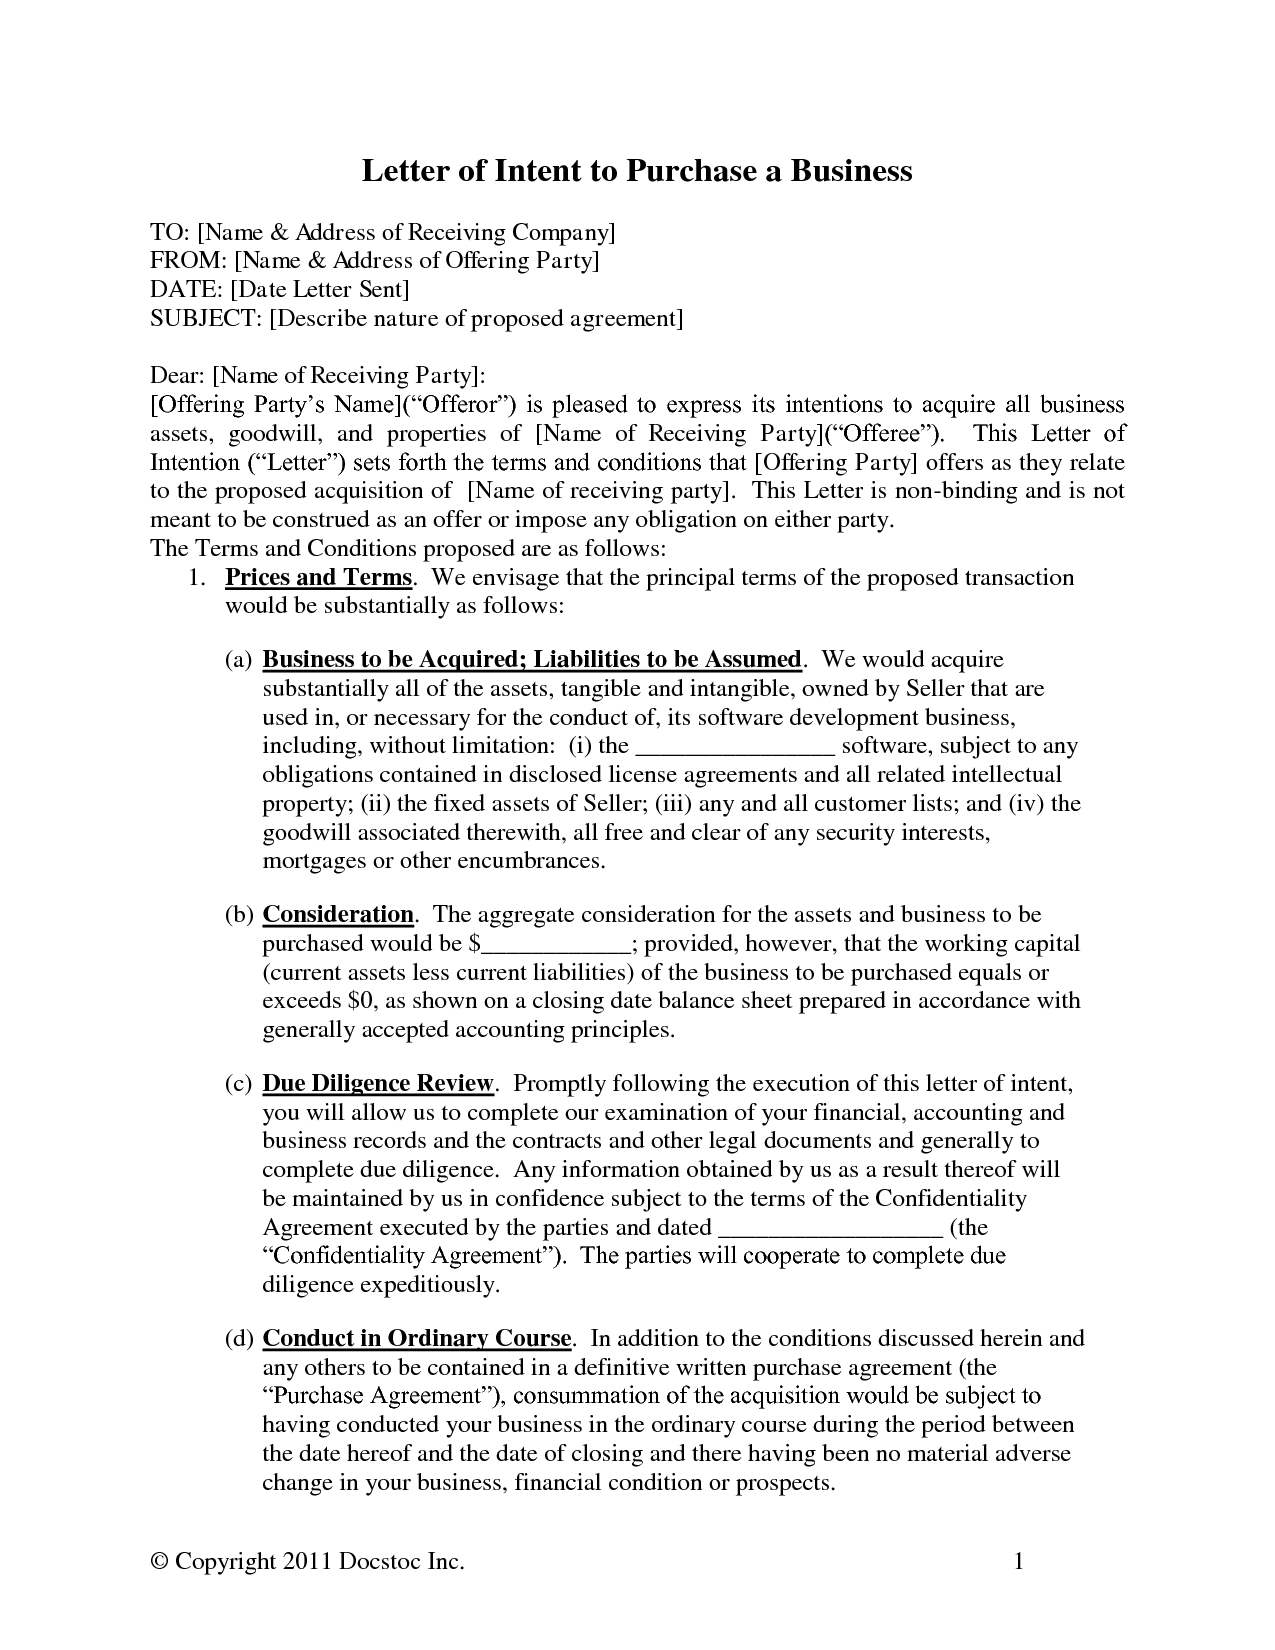 Letter Of Interest Template Pdf - Acquisition Business Letters